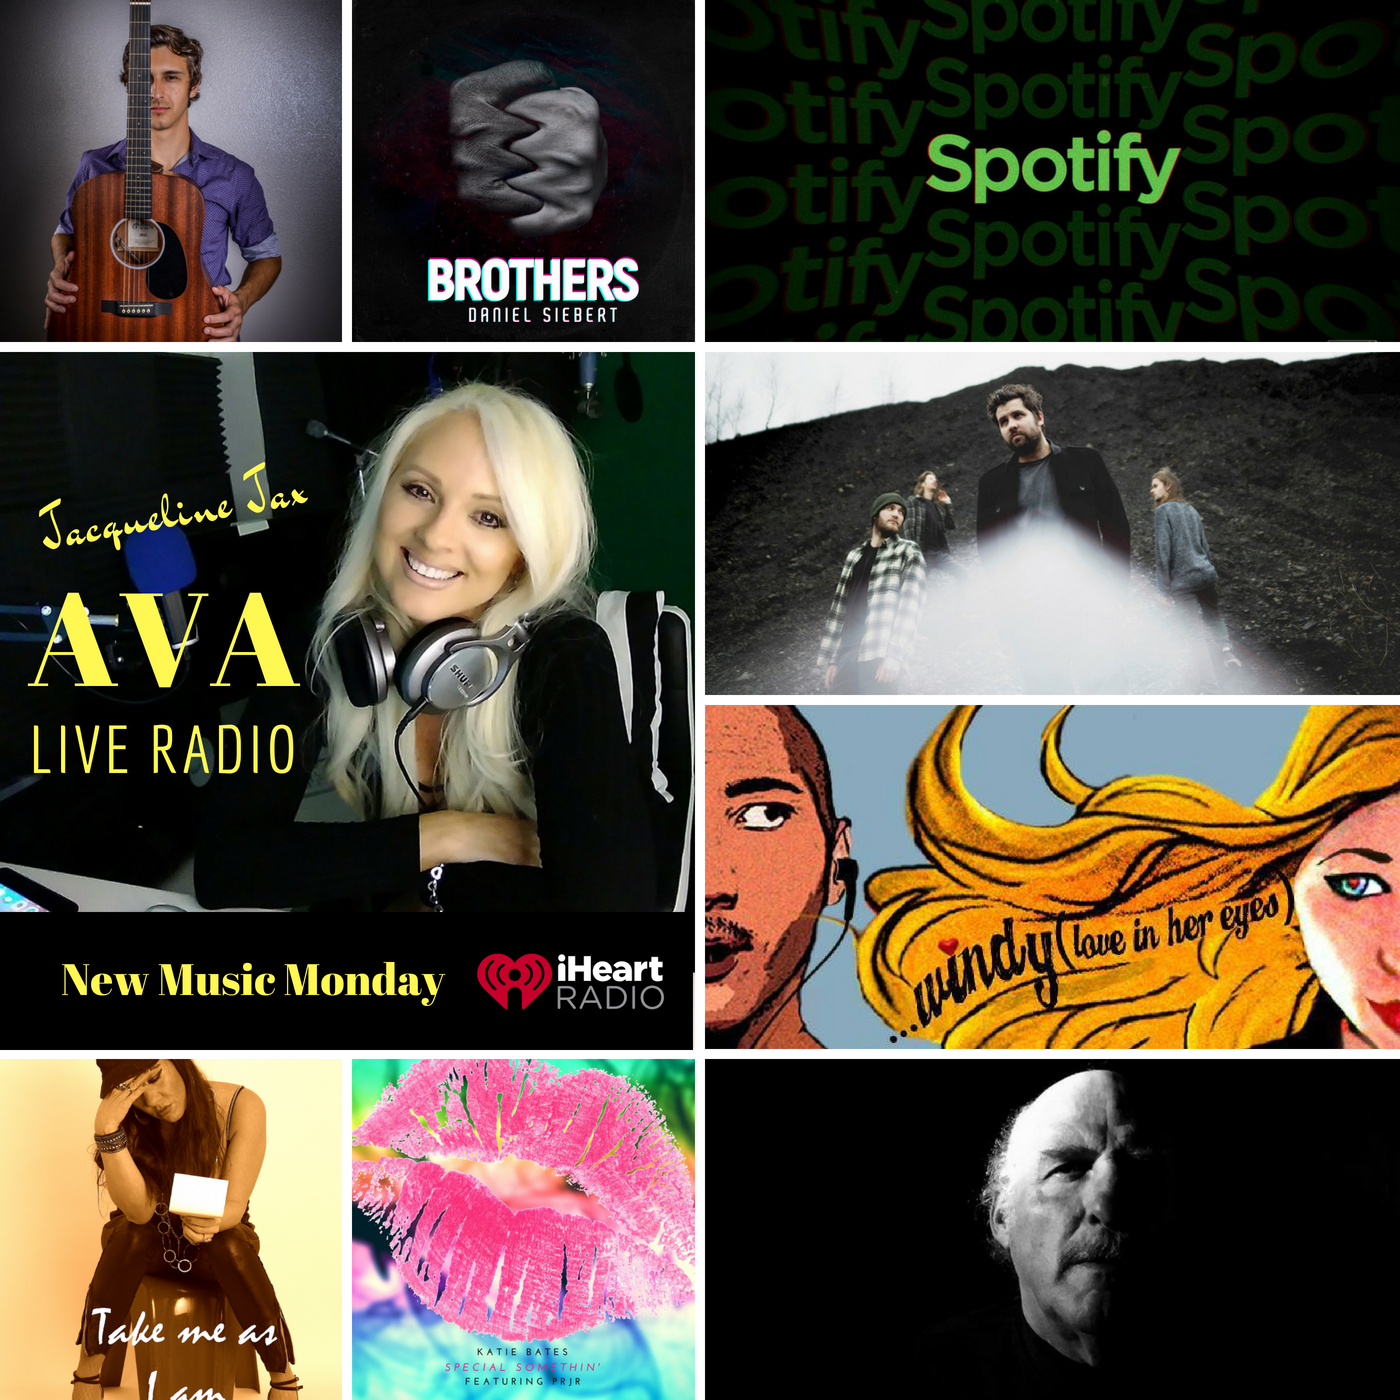 6.4 New Music Monday and Music Business News